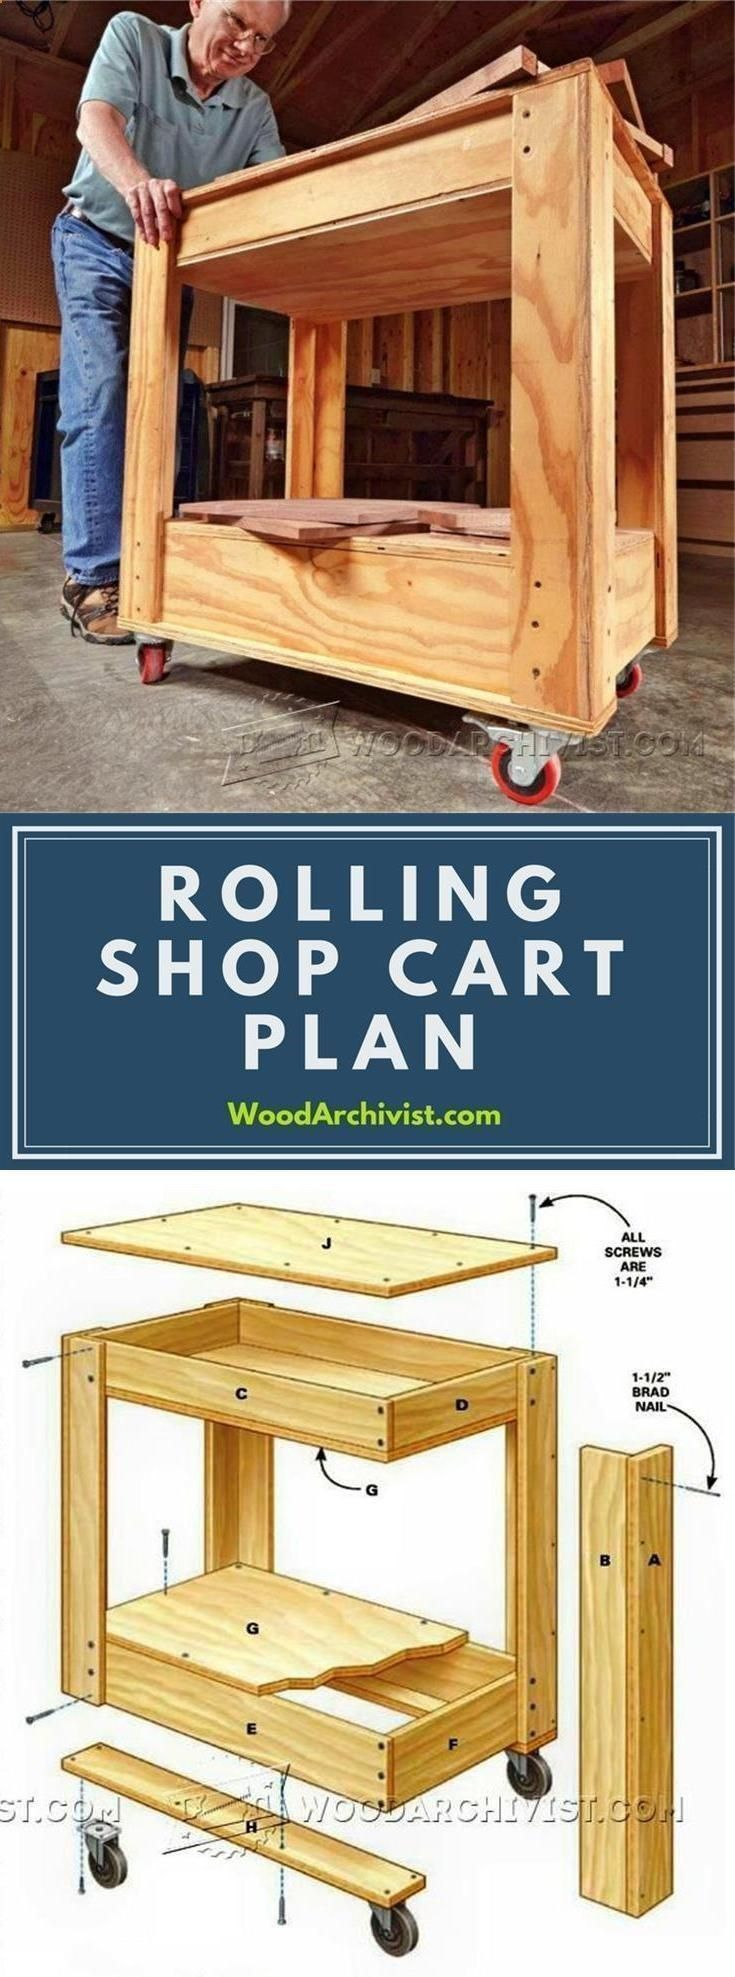 Woodworking - Wood Profit - Rolling Shop Cart Plans - Workshop Solutions Projects, Tips and Tricks | WoodArchivist.com Discover How You Can Start A Woodworking Business From Home Easily in 7 Days With NO Capital Needed! #homewoodworkingshop #woodworkingtips